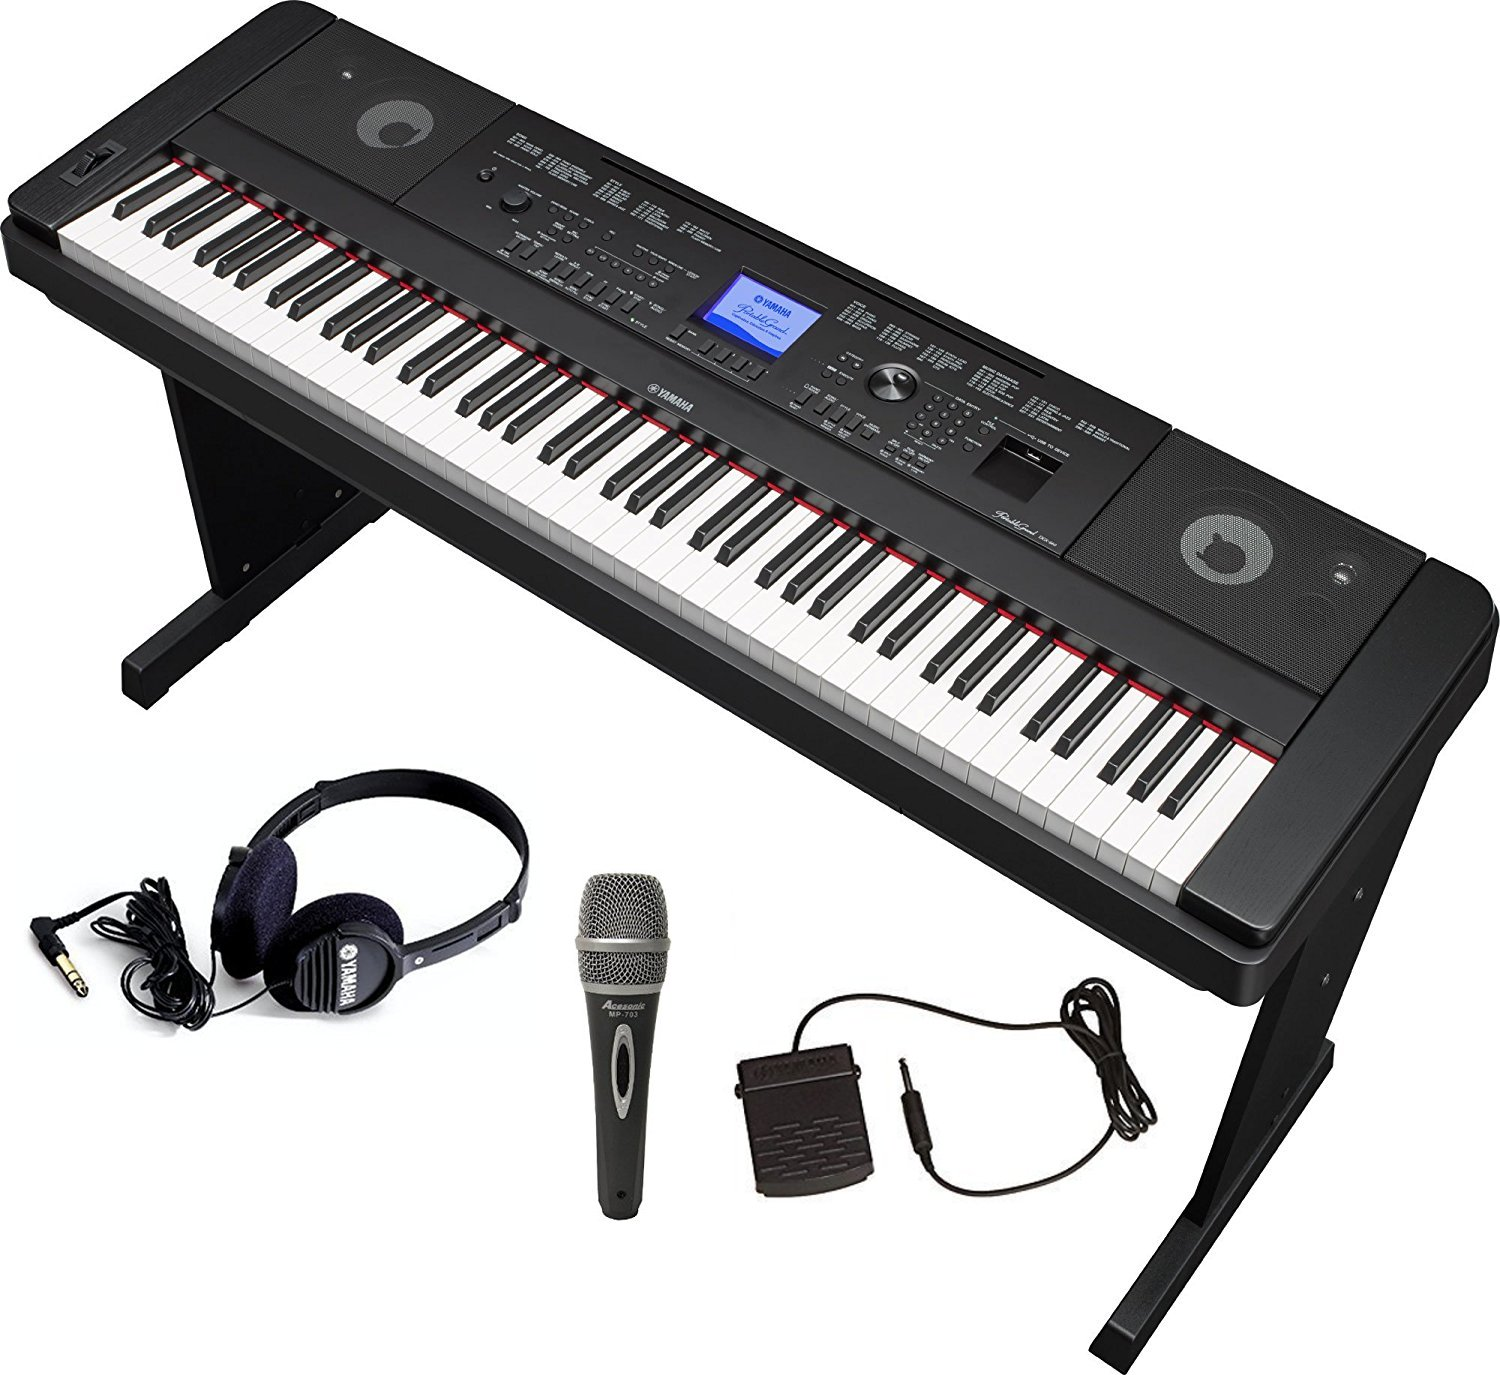 Yamaha DGX660 Bundle with Furniture Stand, Headphones, Microphone and Sustain Pedal by YAMAHA